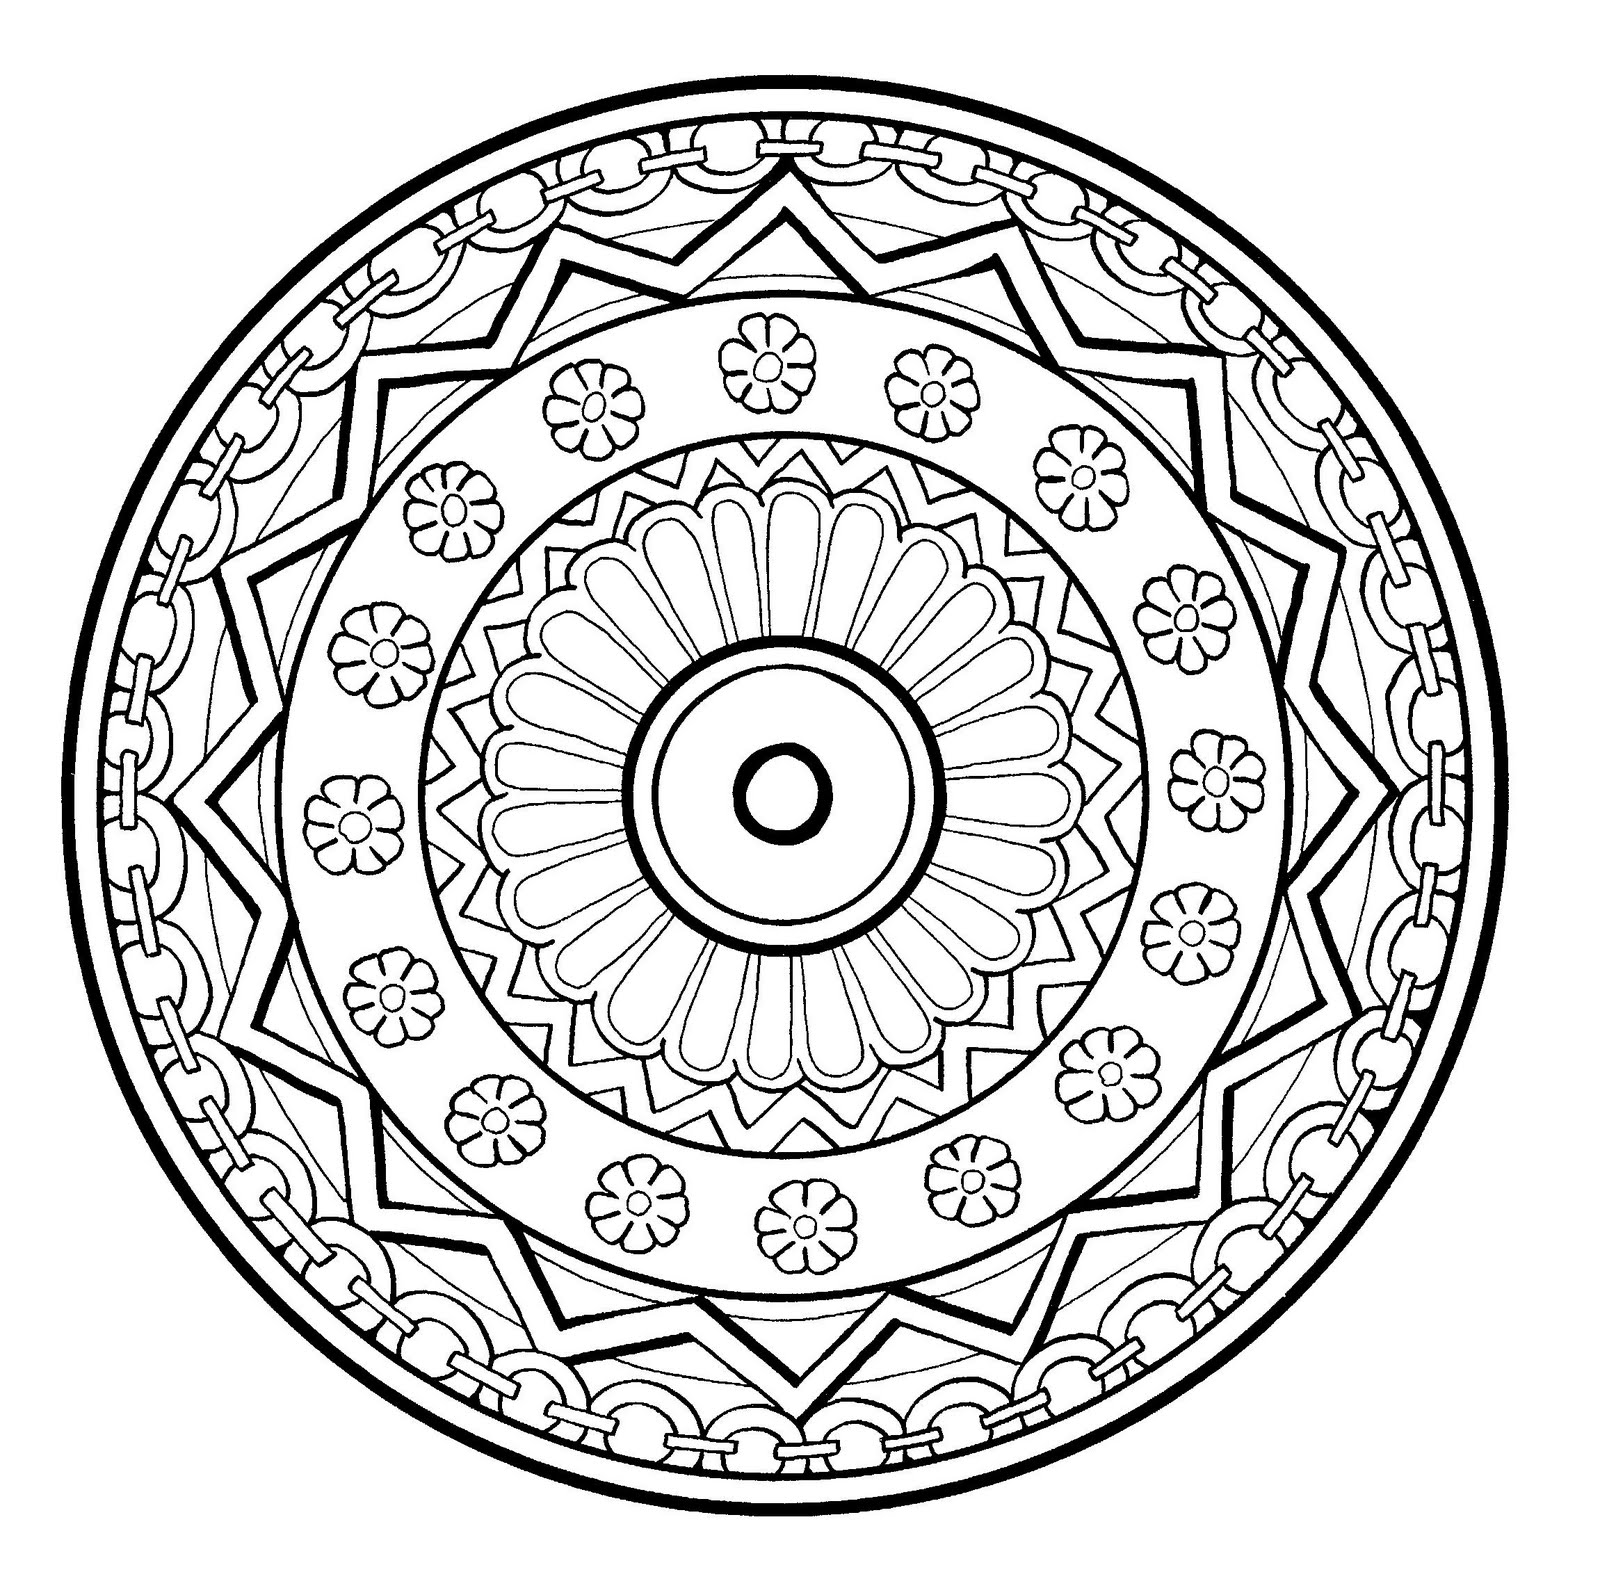 simple mandalas to color mandala coloring page with hearts easy mandalas for kids to simple mandalas color